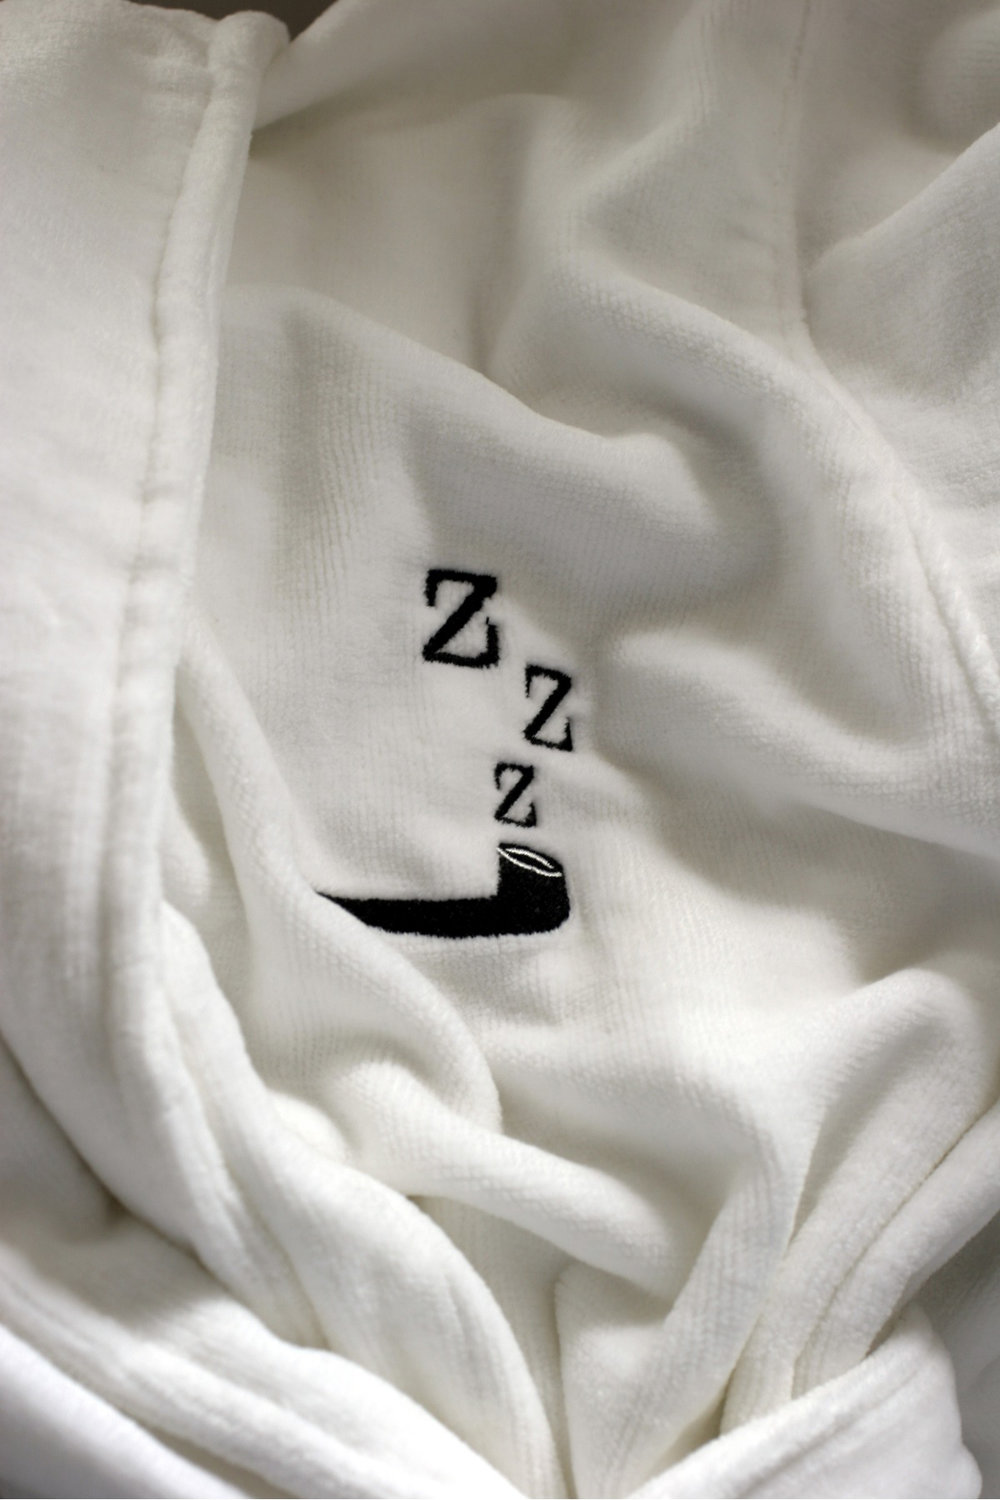 3102-tim-clinch-bathrobe-detail.jpg